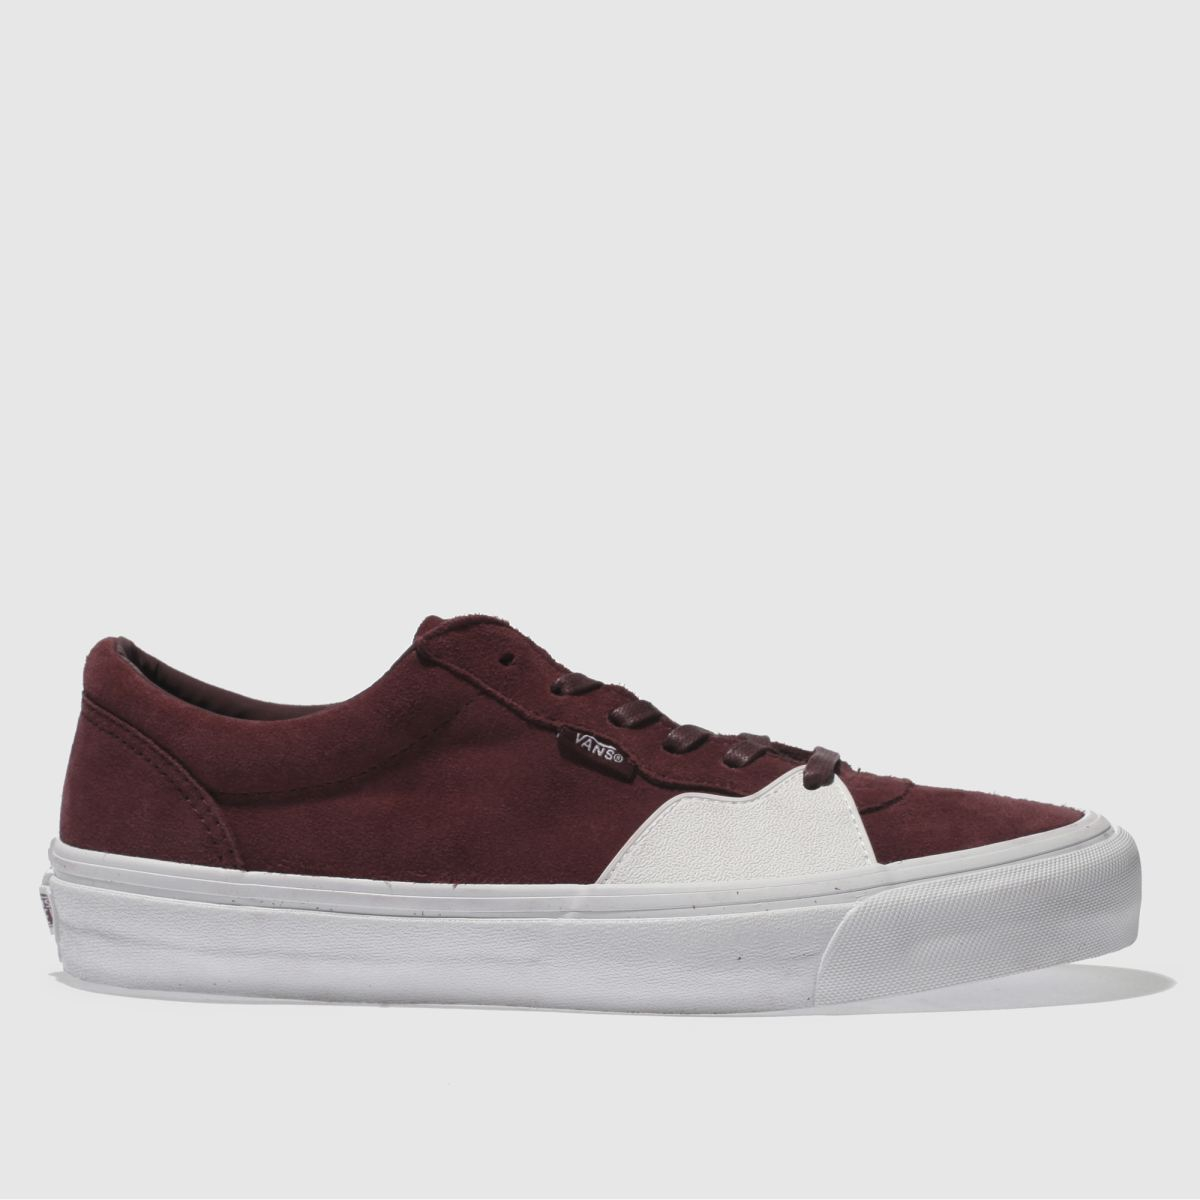 Vans Burgundy Style 205 Trainers